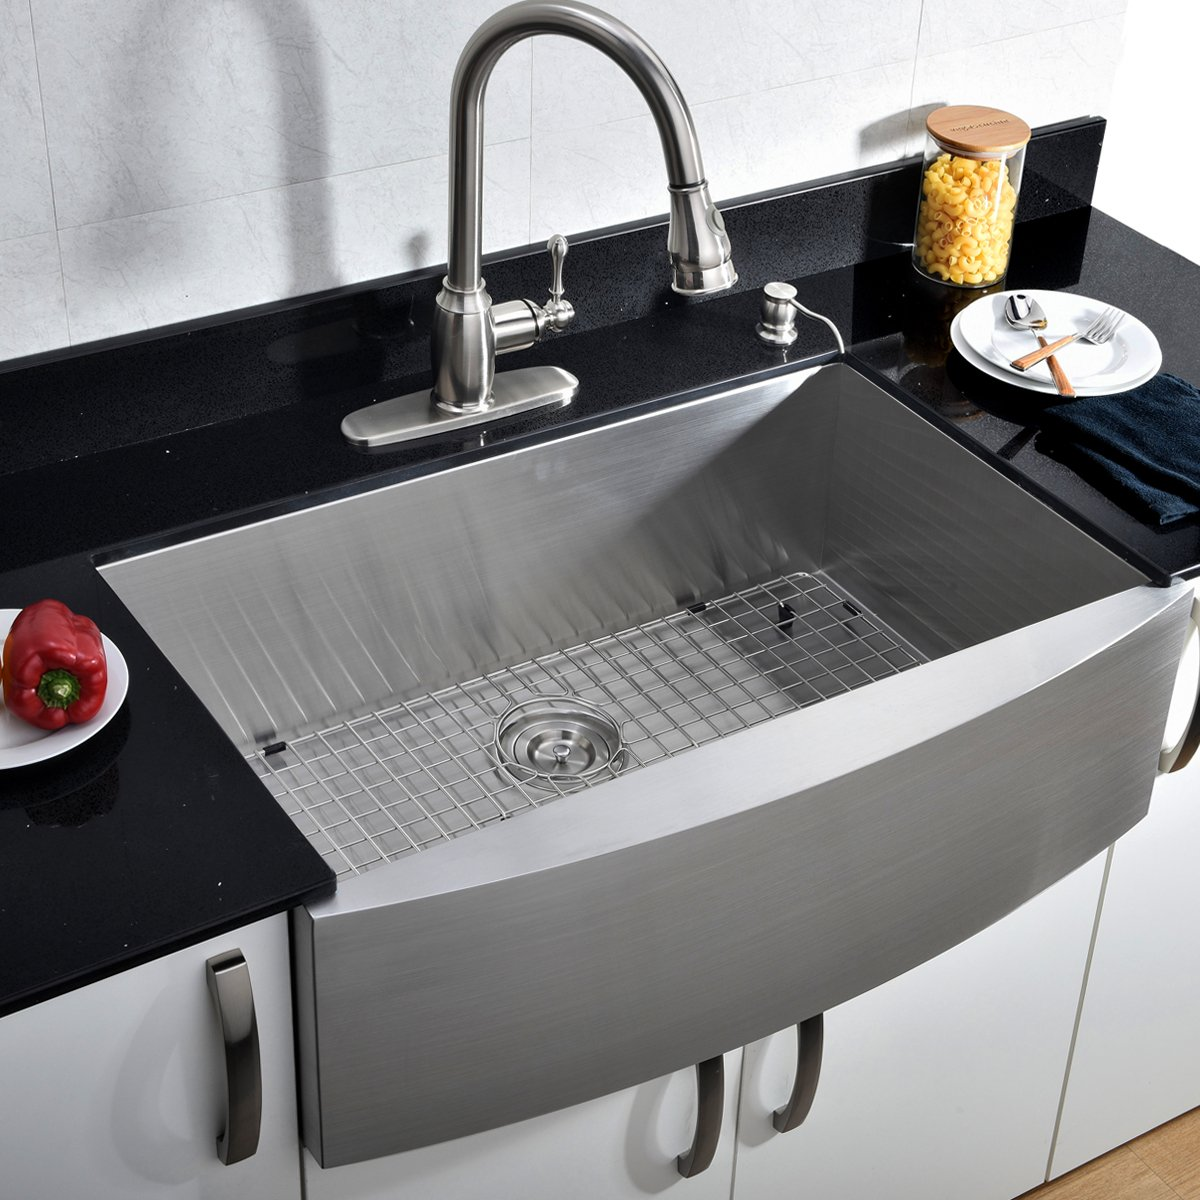 Cheap Brushed Steel Sinks, find Brushed Steel Sinks deals on line at ...